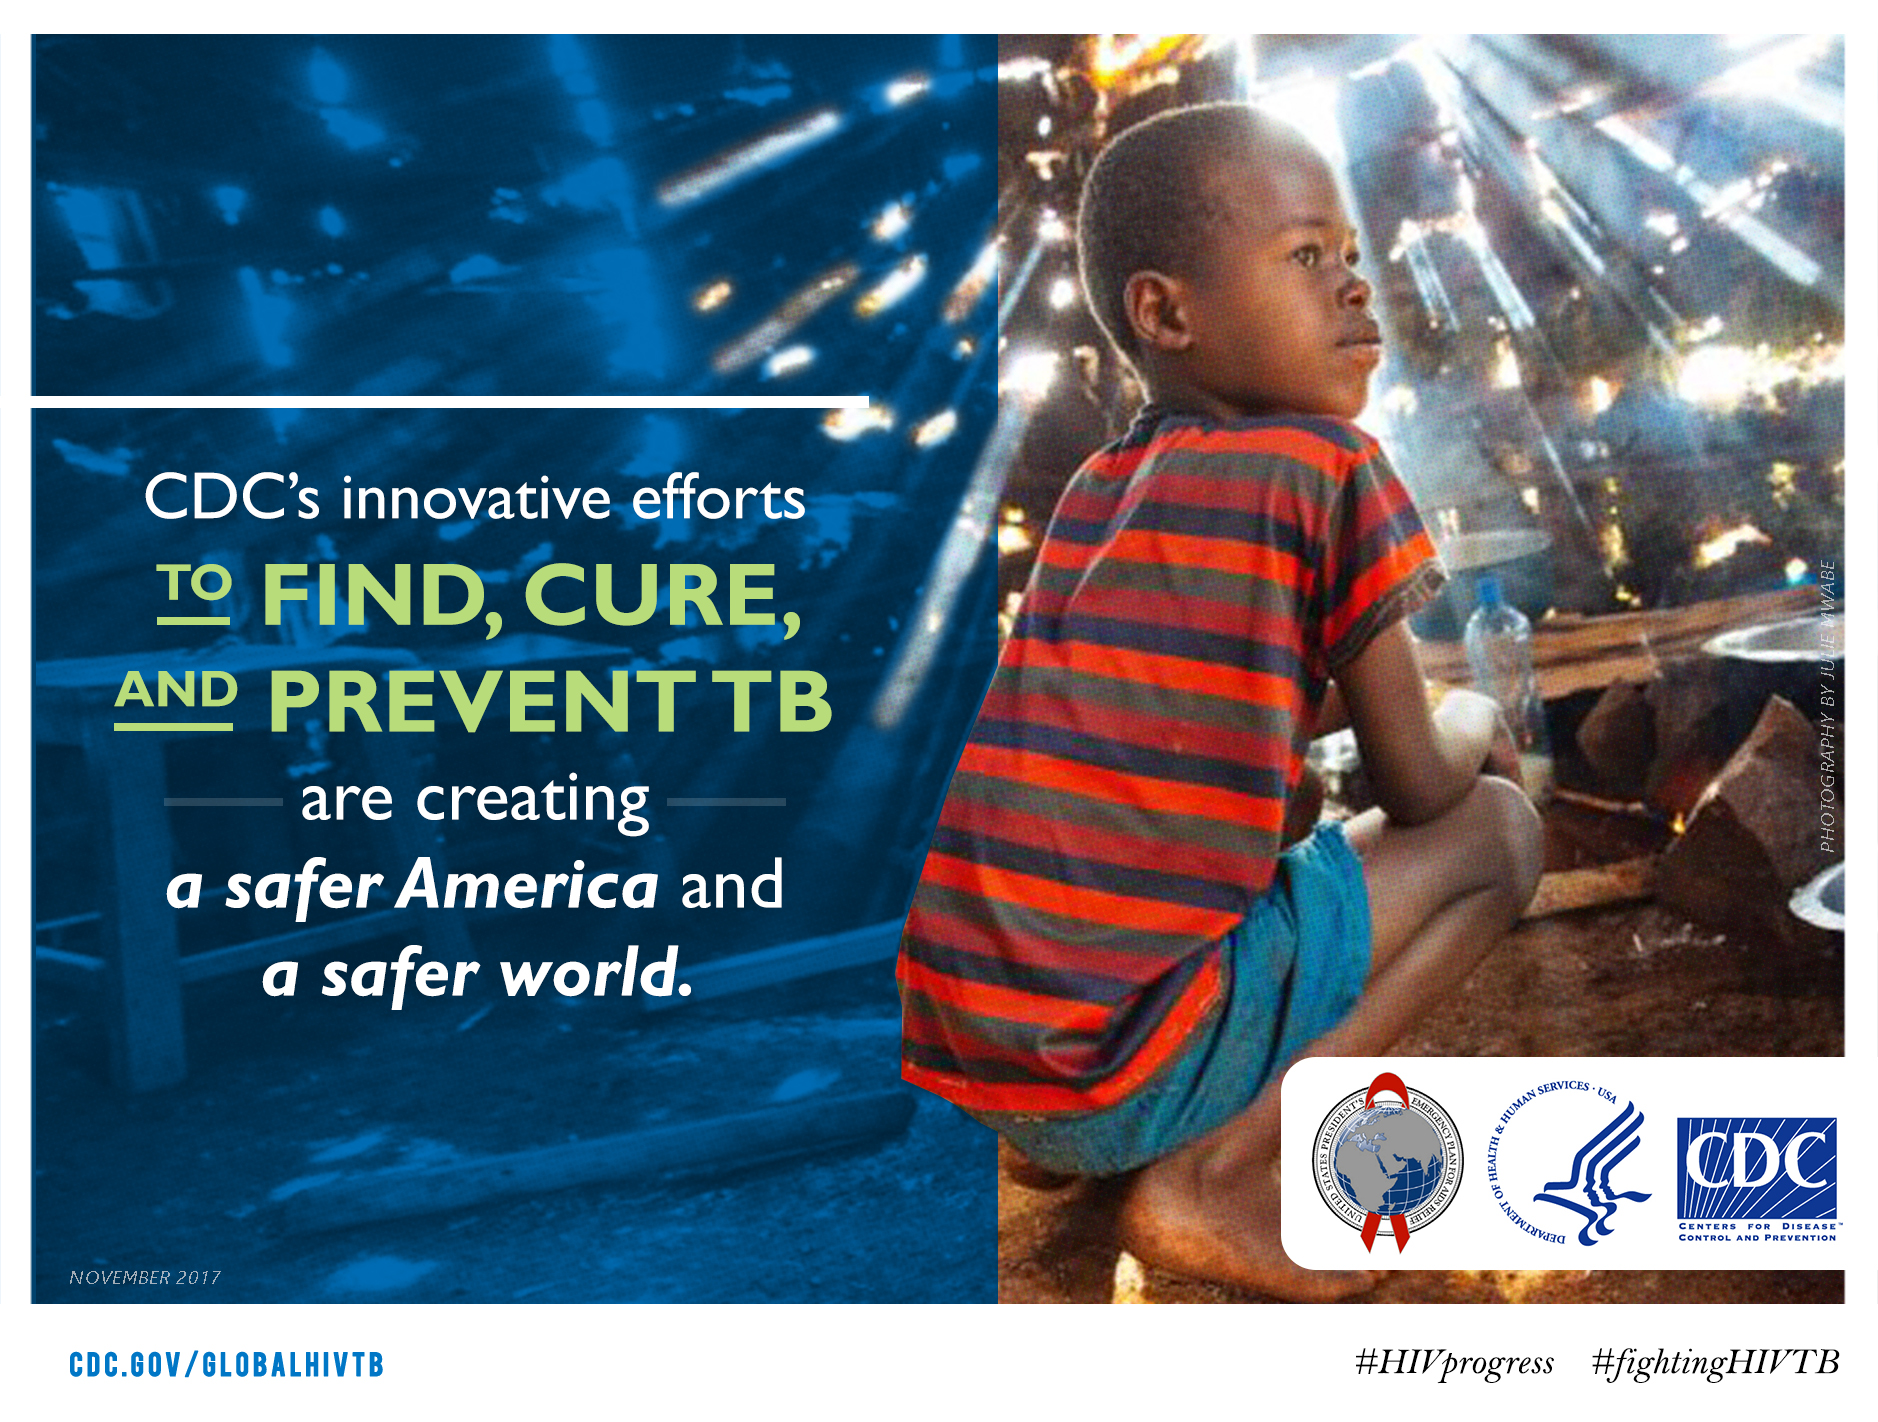 CDC's innovative efforts to find cure and prevent TB